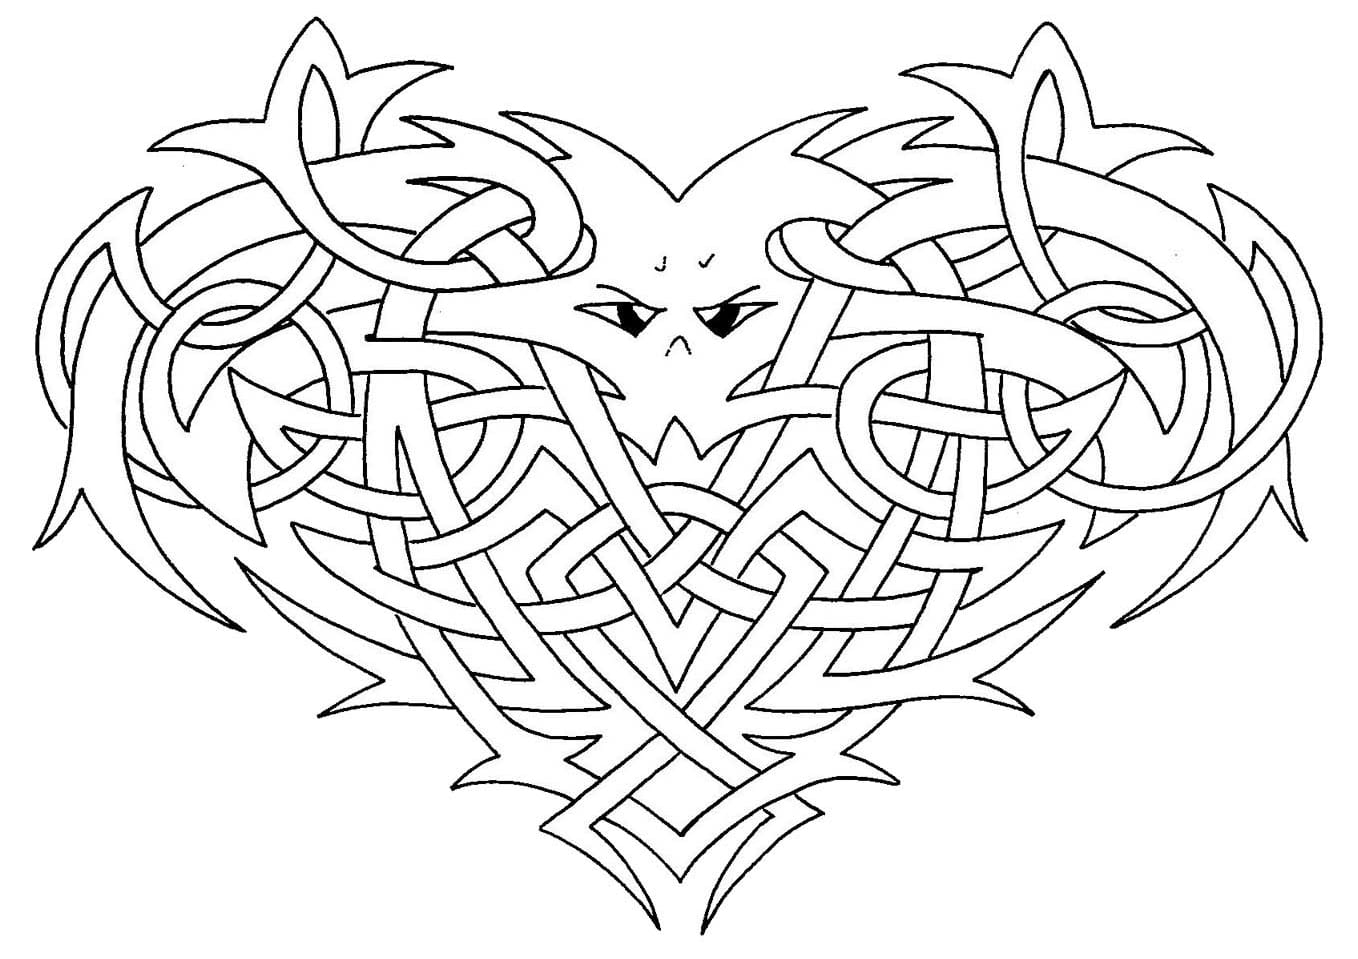 Celtic art drawing, with intricate elements, forming an heart